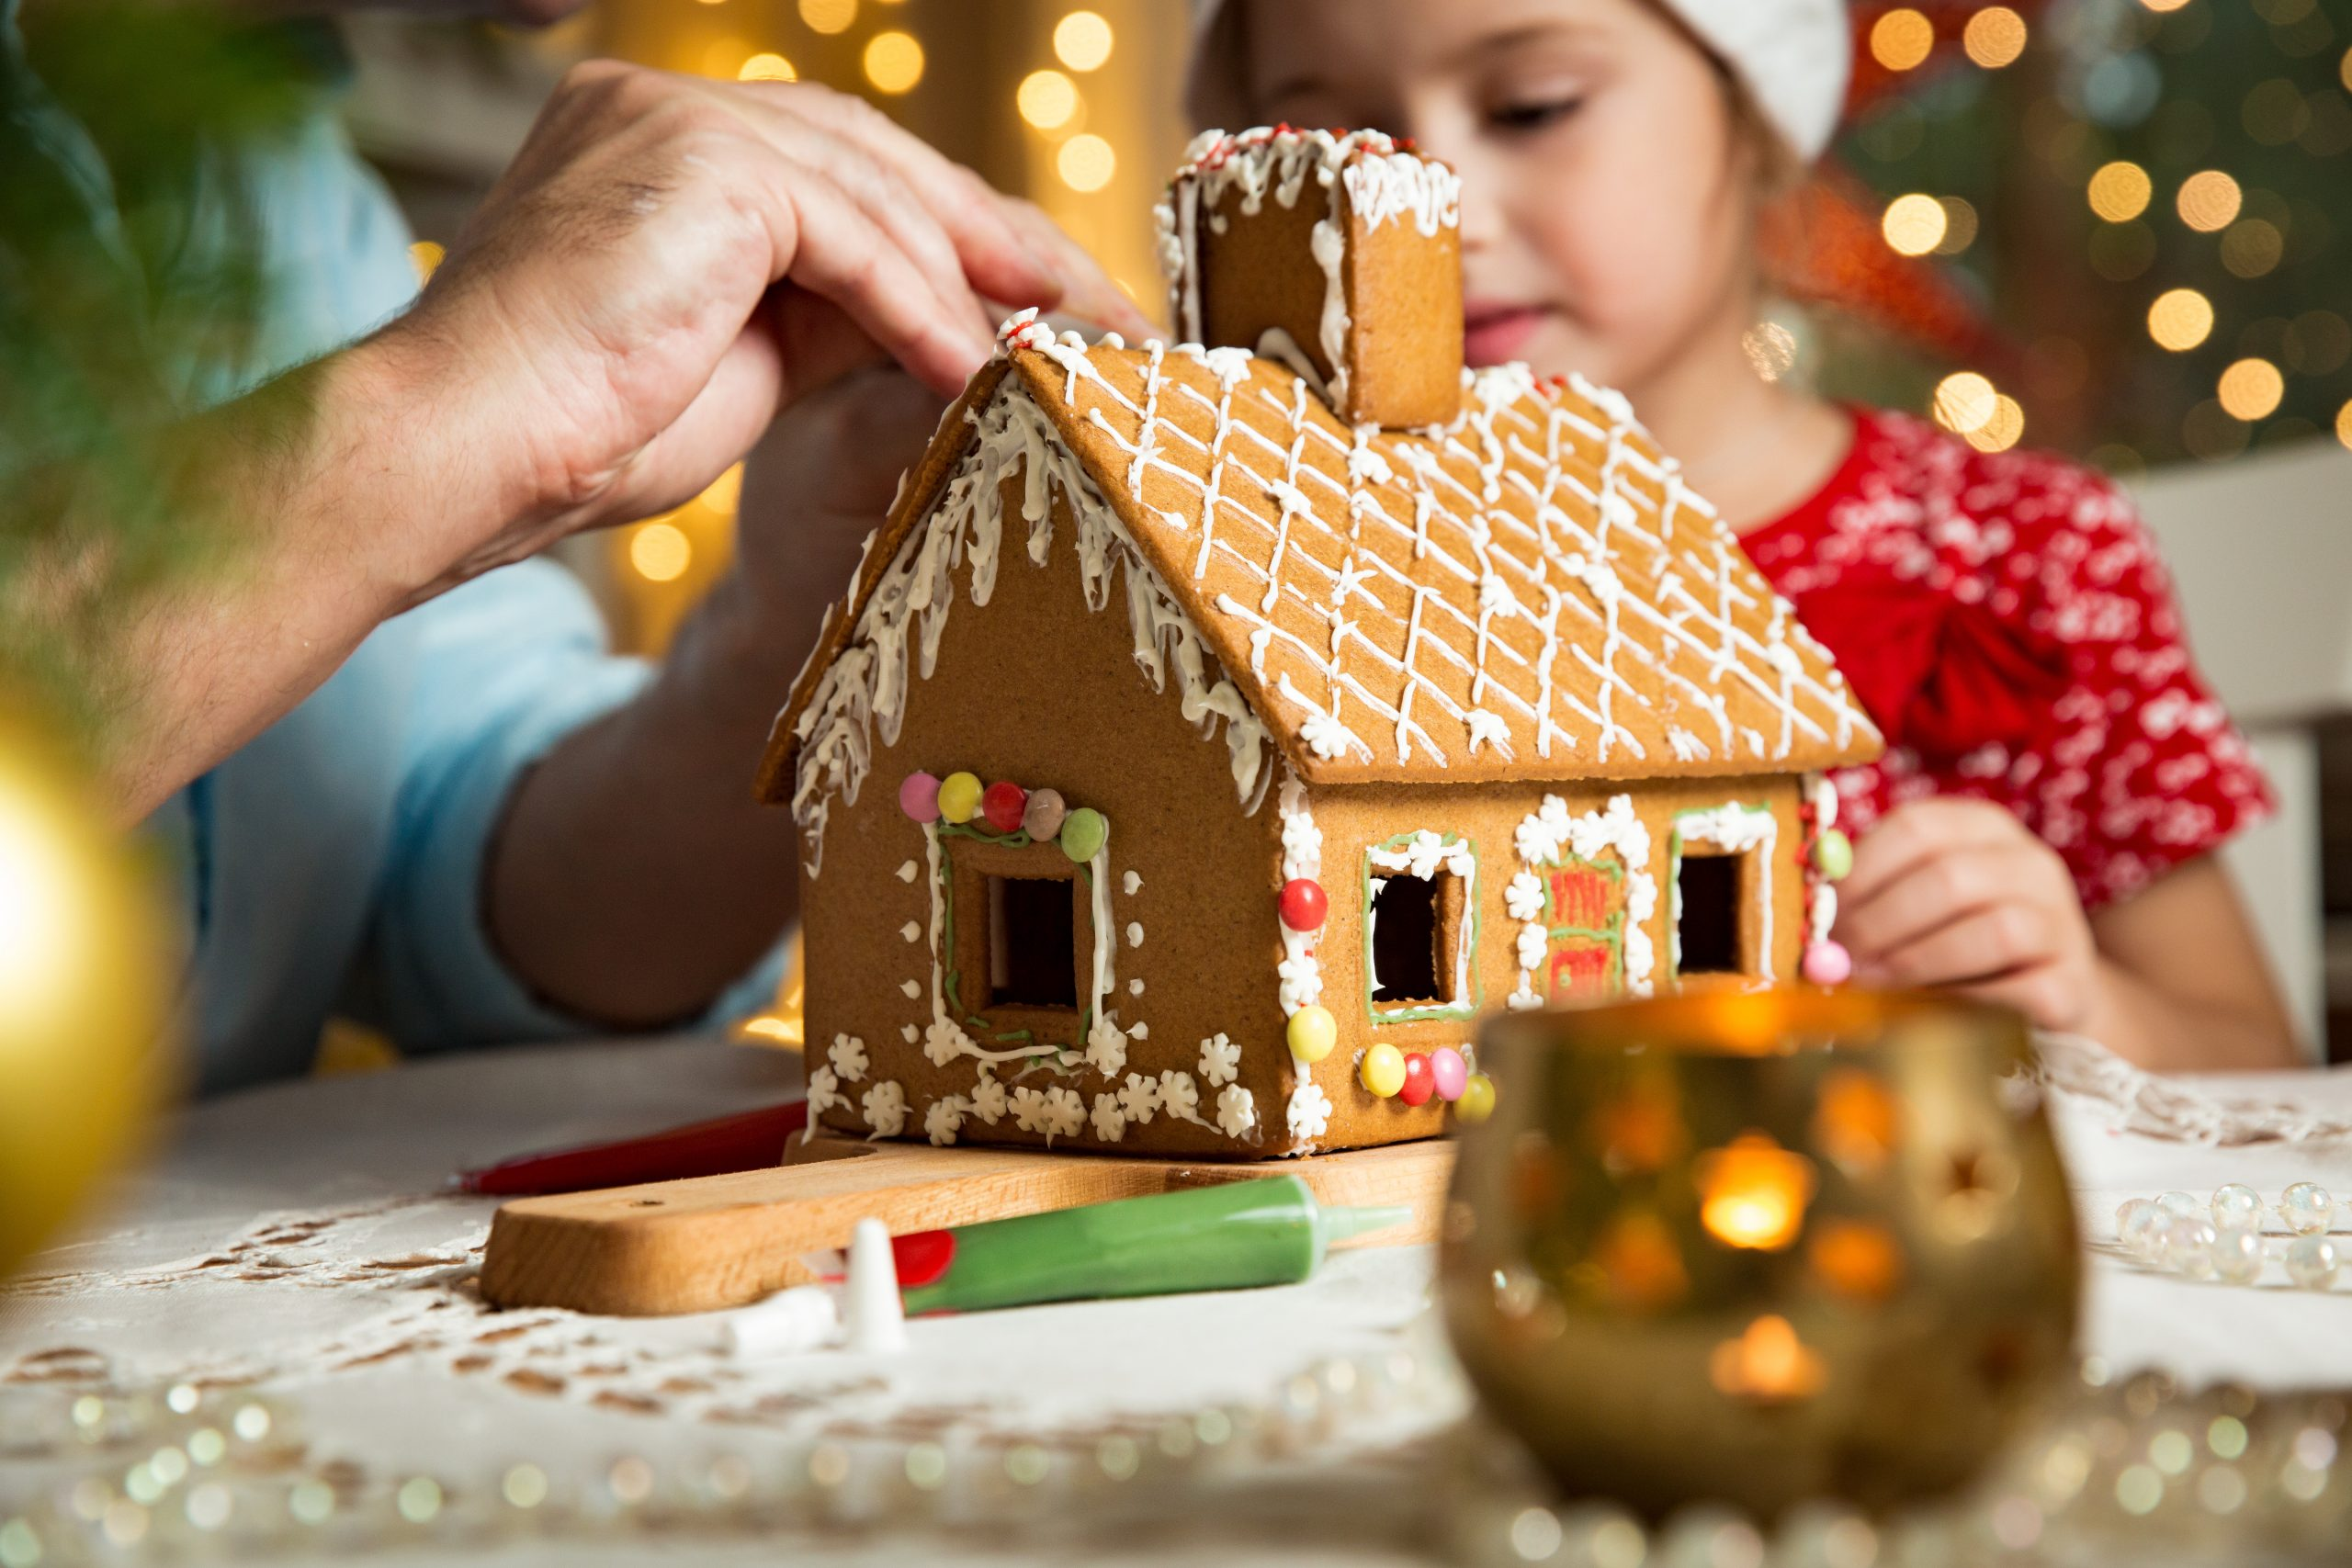 Father and adorable daughter in red hat building gingerbread house